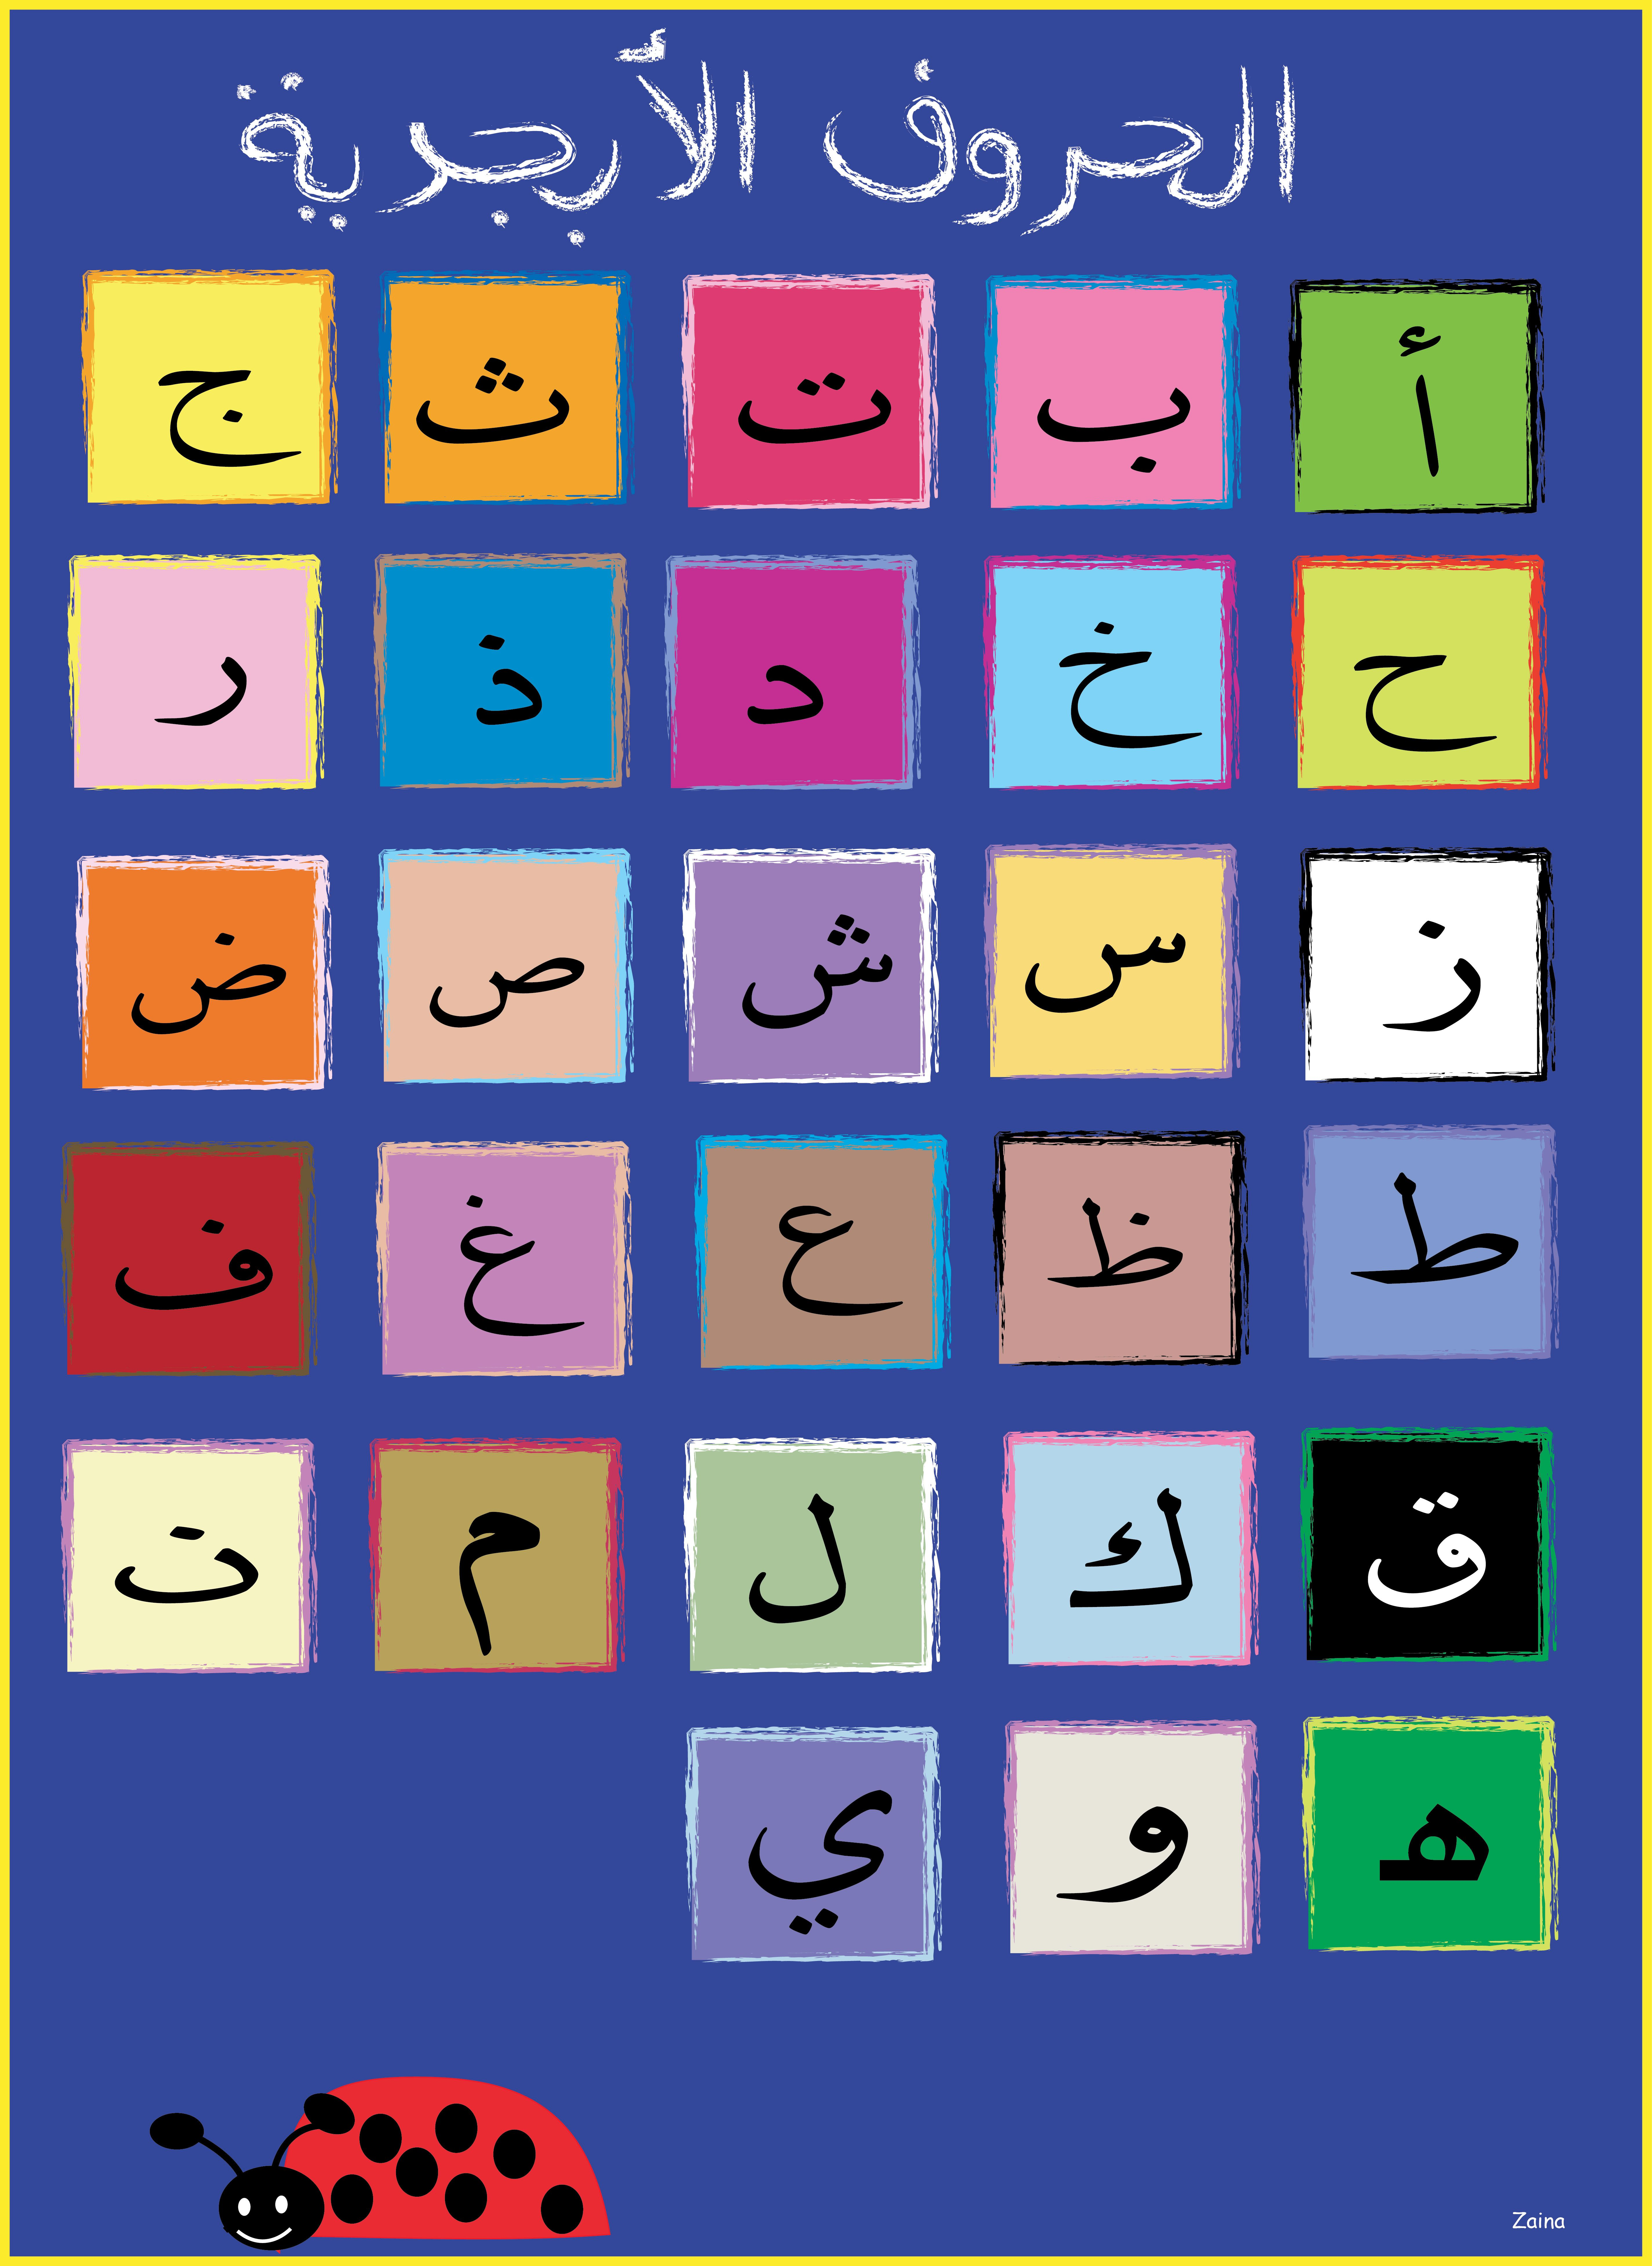 This Is Arabic Alphabets Poster